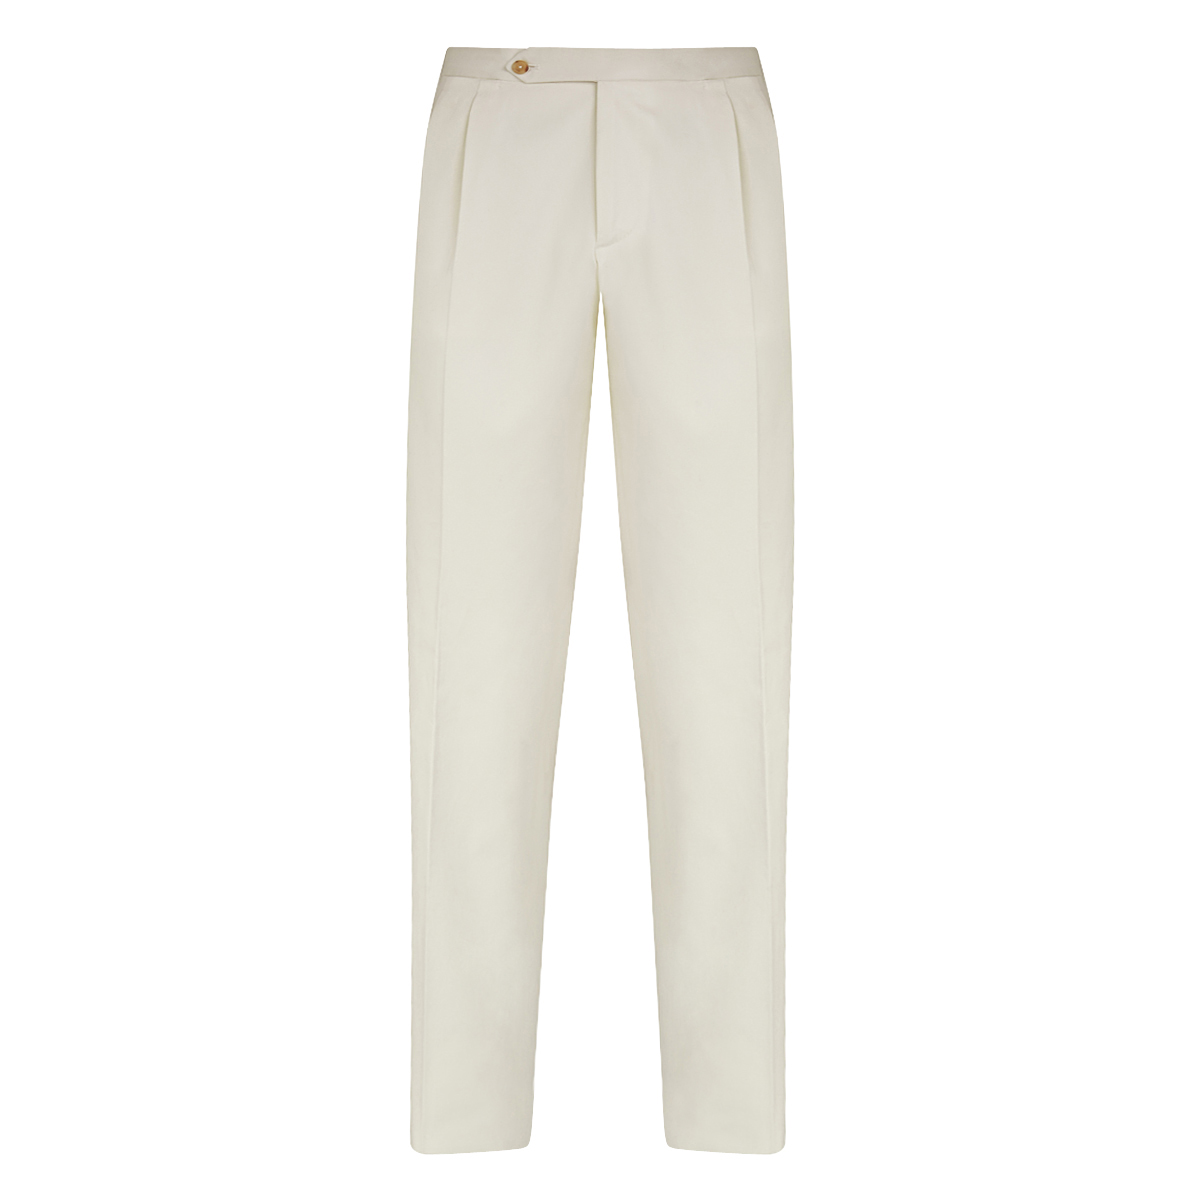 White Cotton Formal Trousers